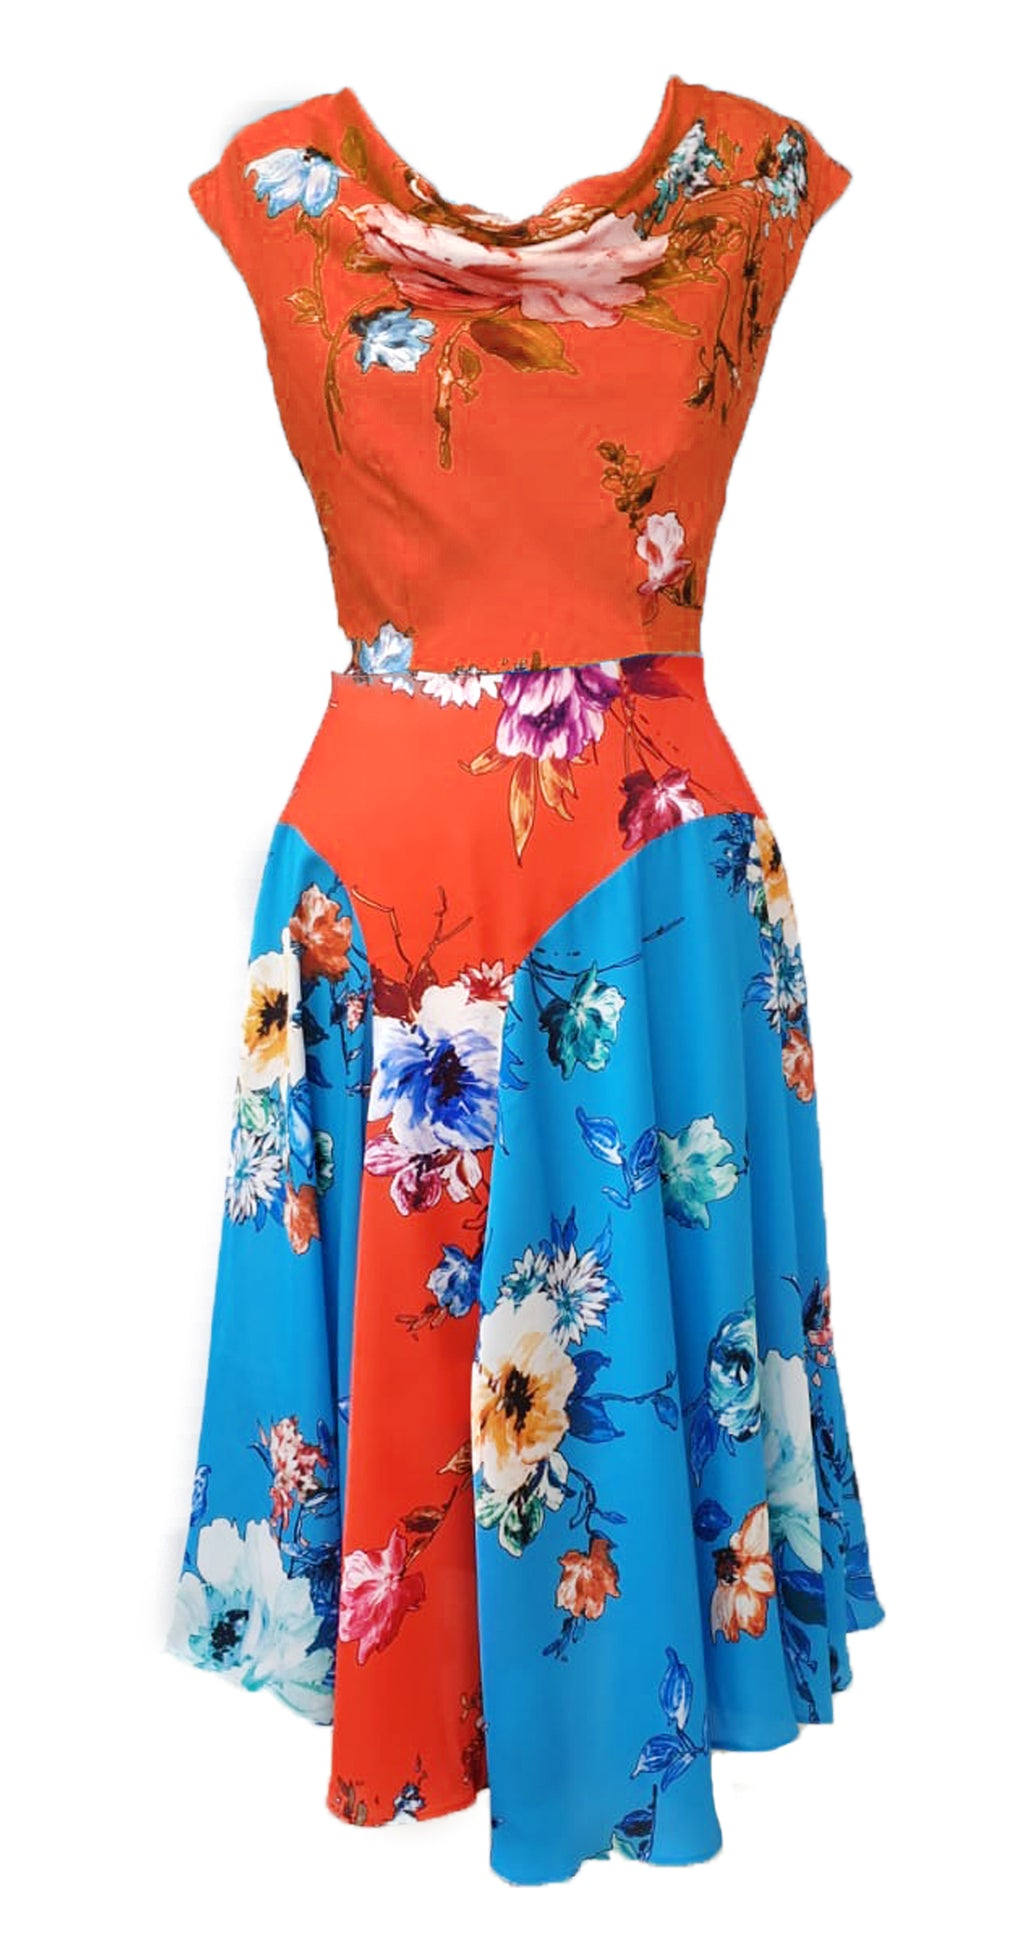 Kelly Dress DRC306 Orange Vibrant Floral Print